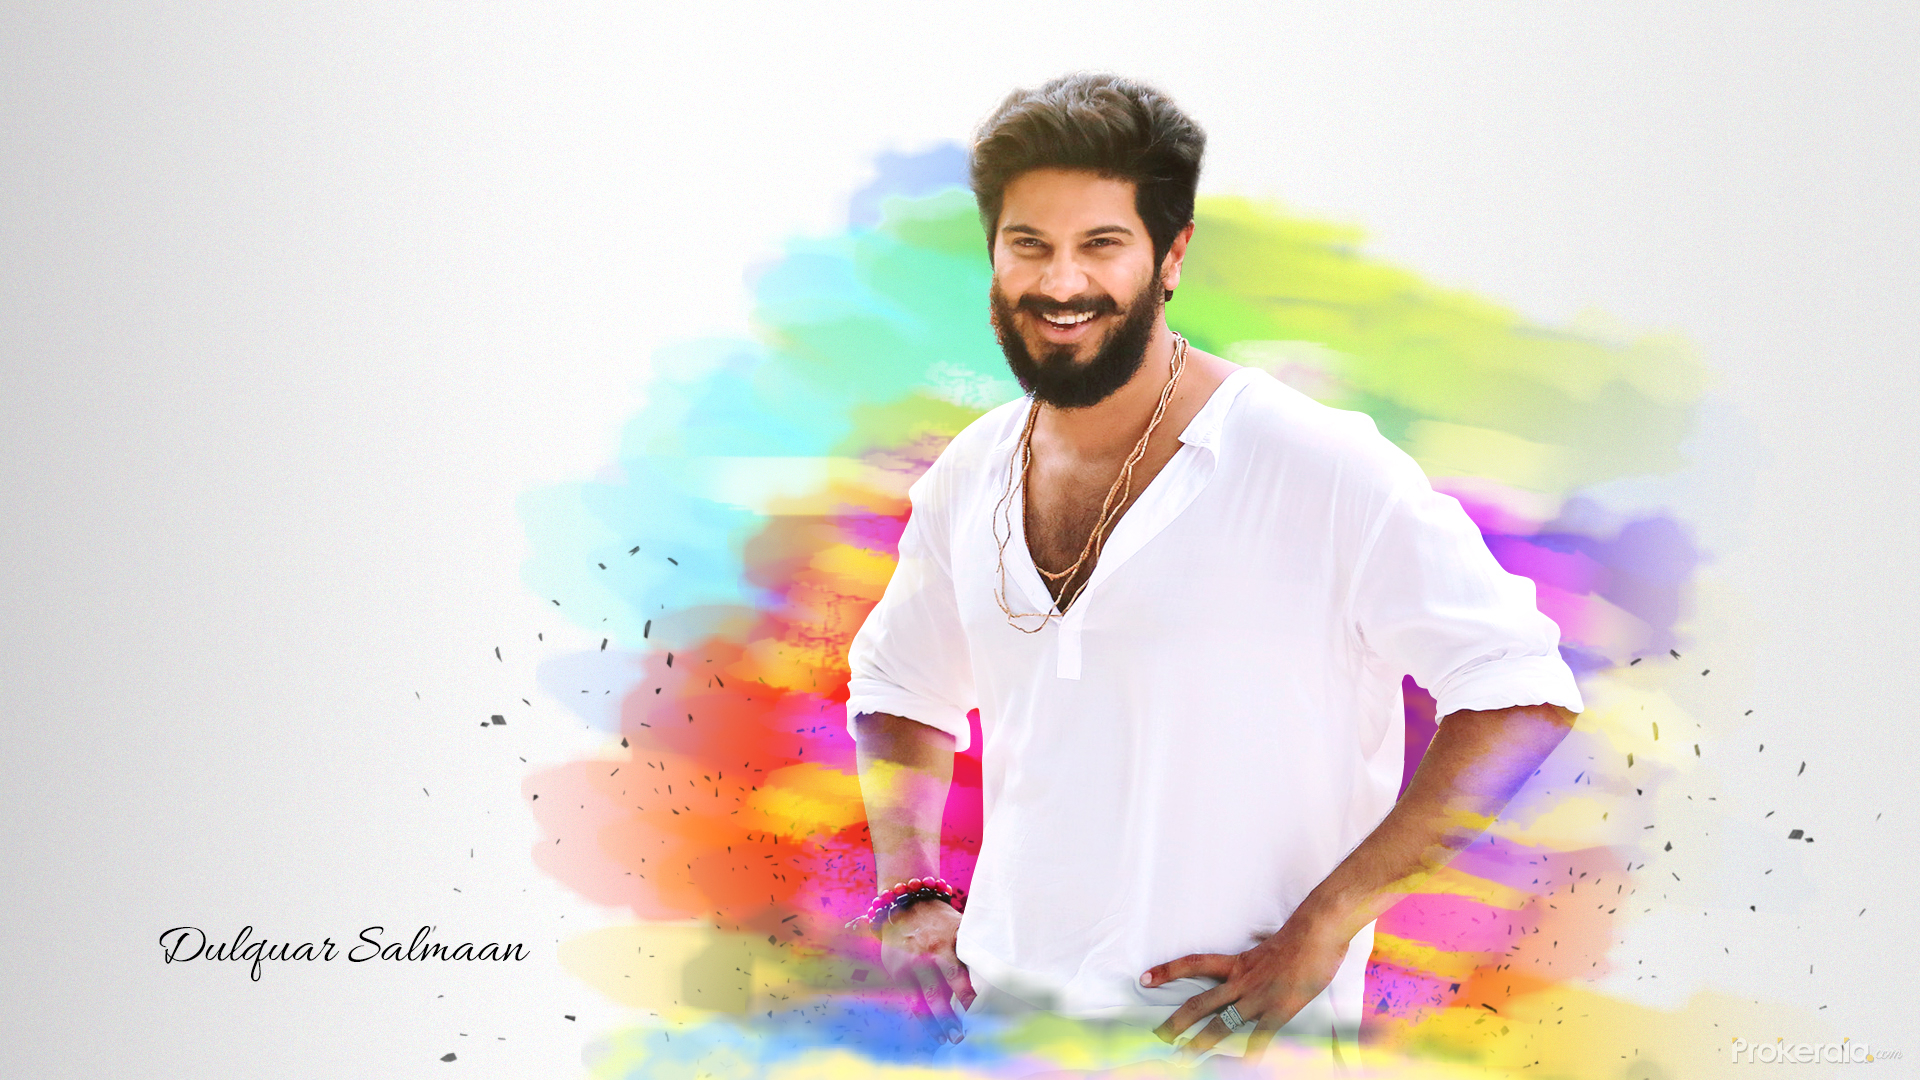 Varun And Alia Hd Wallpapers Download Dulquer Salman Wallpaper 1 Hd Dulquer Salman